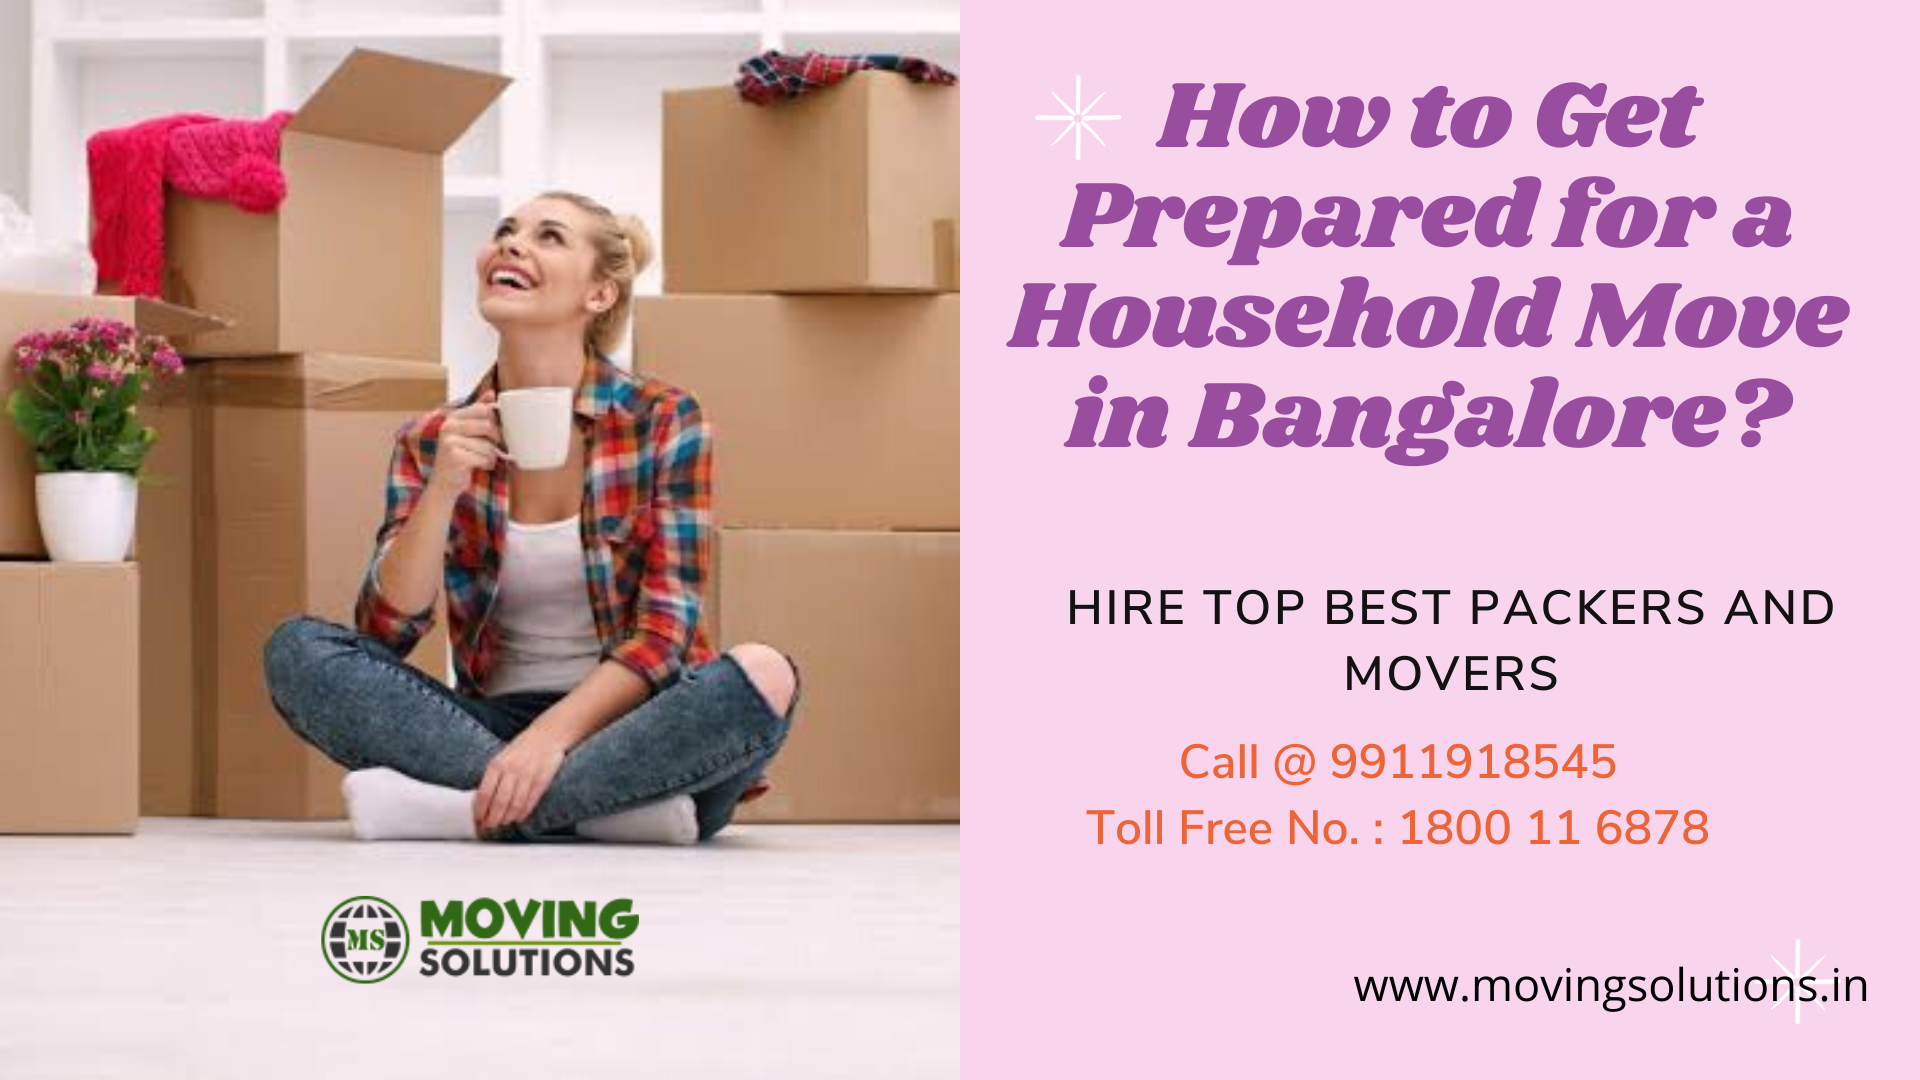 How to Get Prepared for a Household Move in Bangalore?